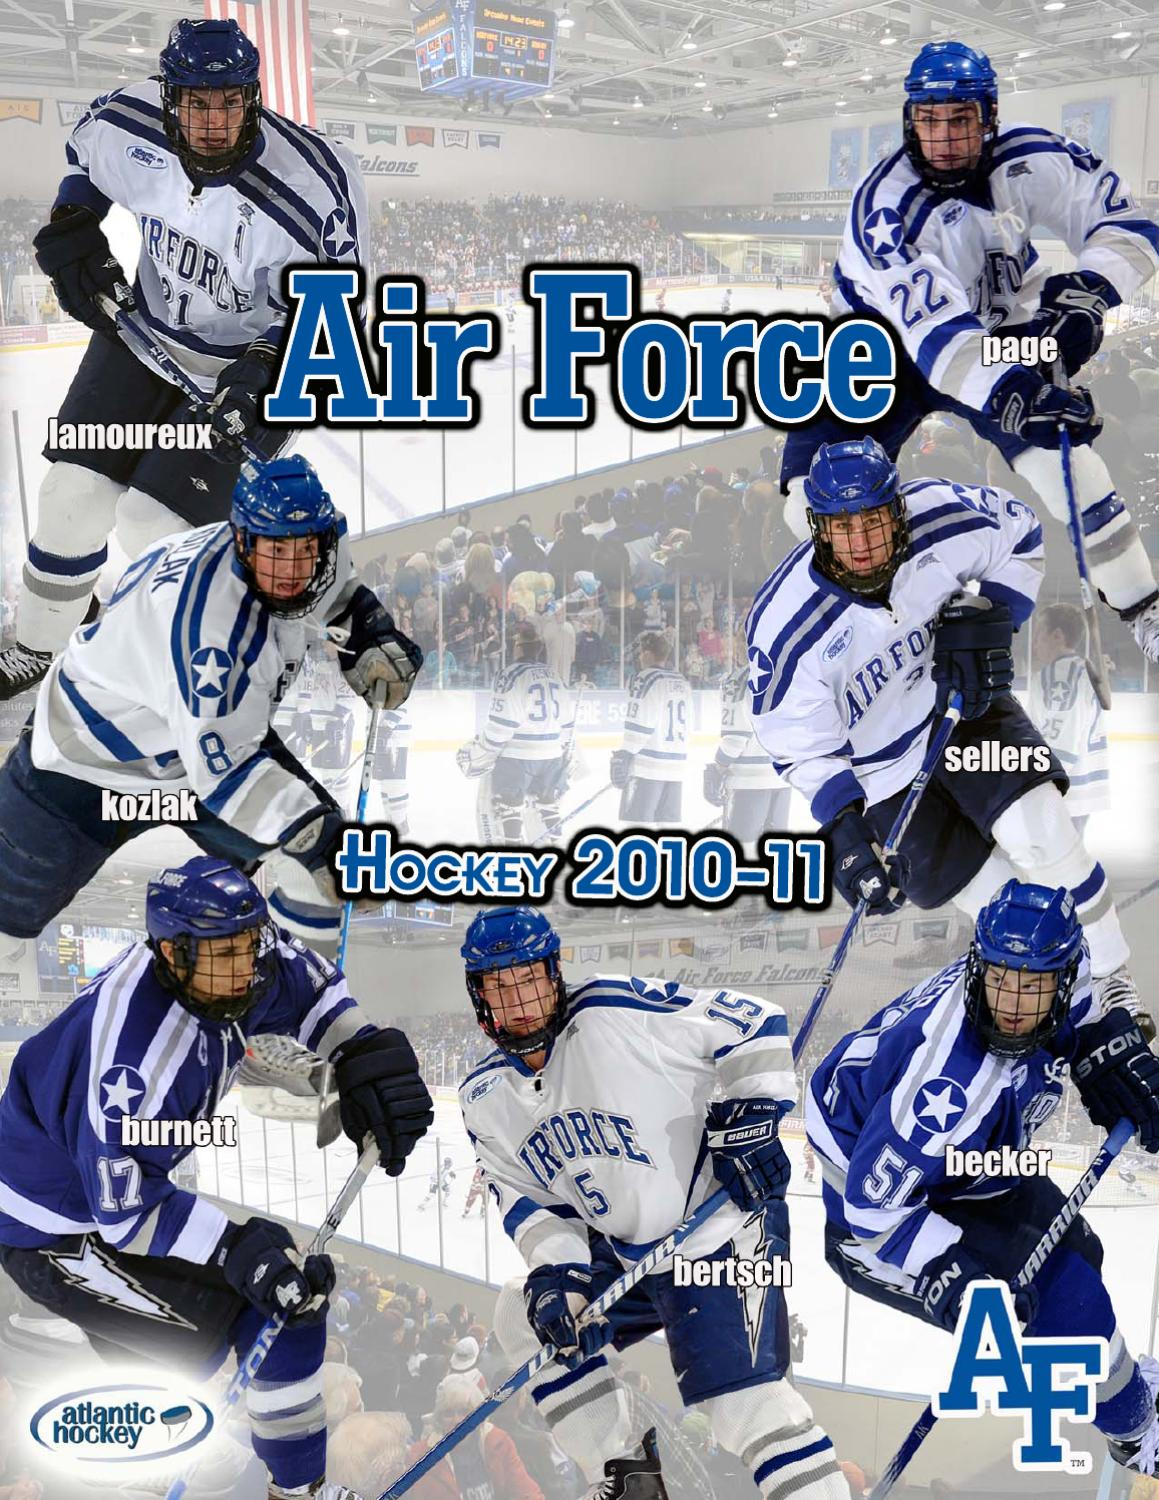 24a501ca4a4 Air Force hockey media guide 2010-11 by Dave Toller - issuu